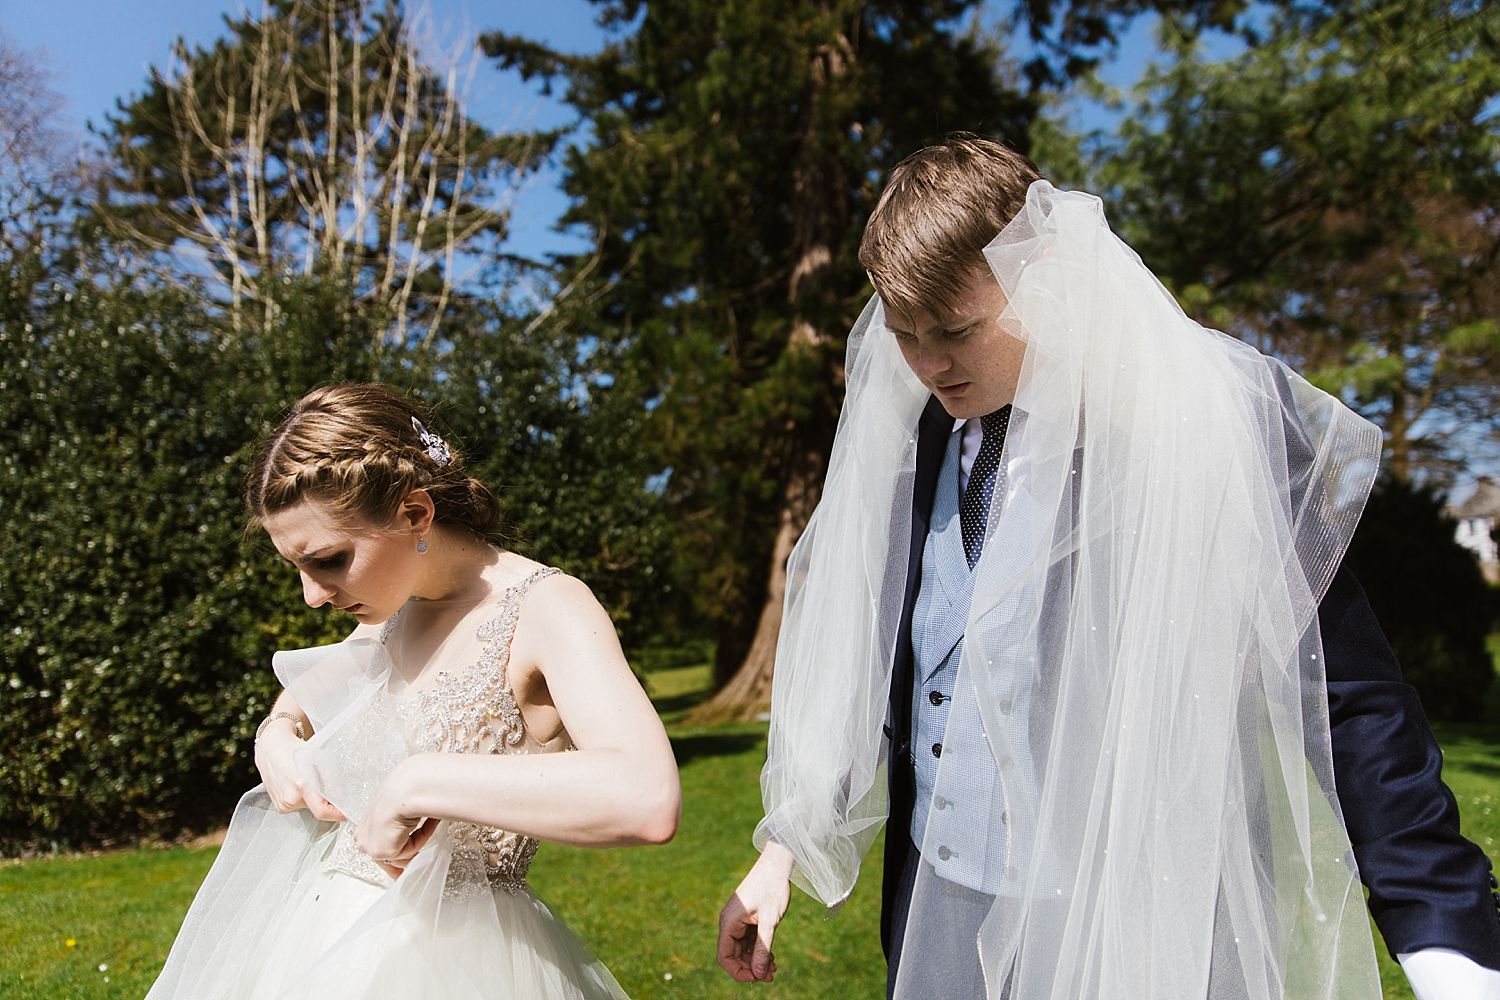 Bride rearranges dress, bride groom carries veil over his shoulders at Belsfield hotel wedding